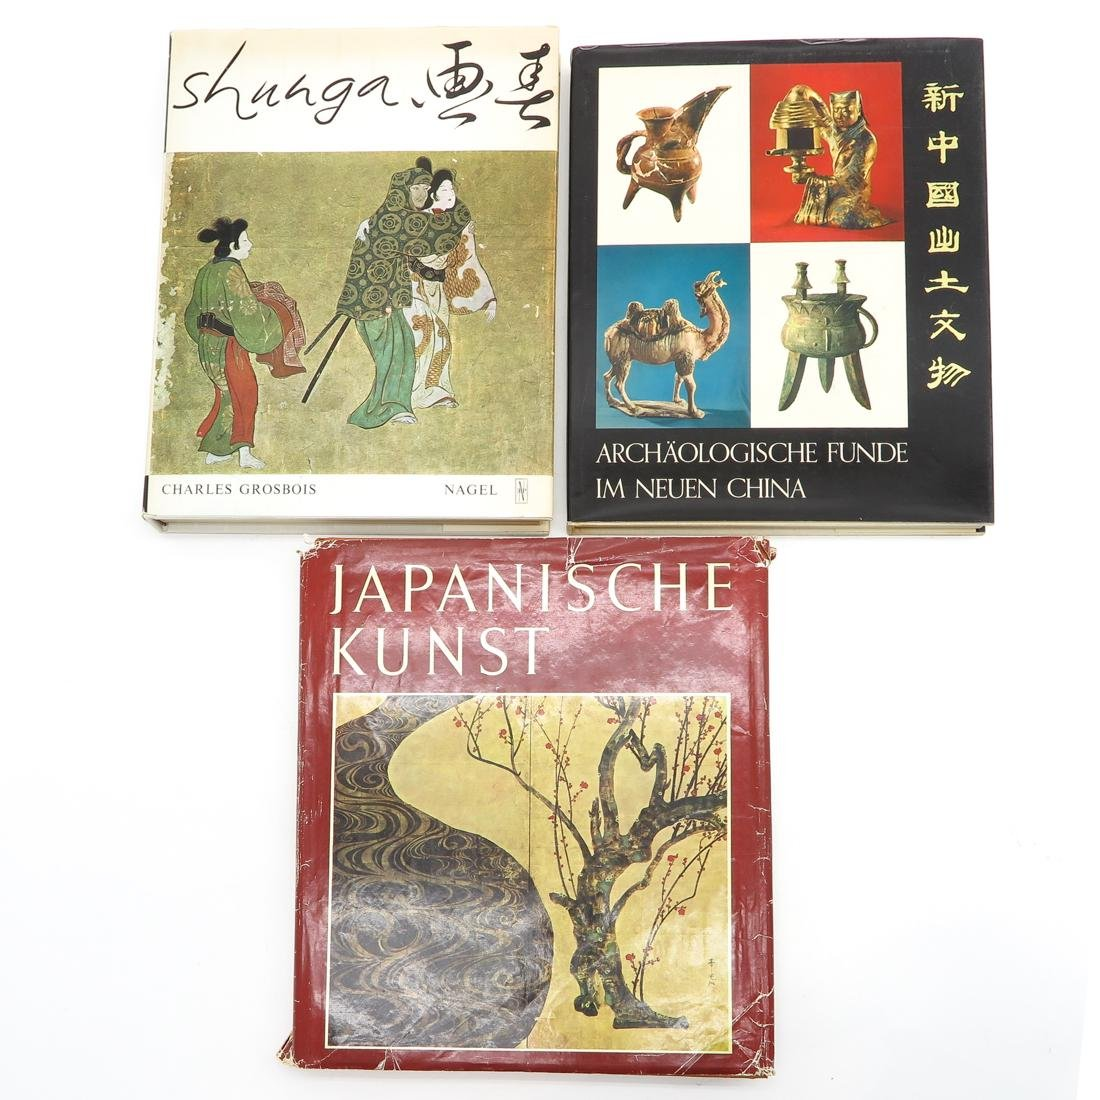 Lot of 9 Diverse Asian Subject Books - 4